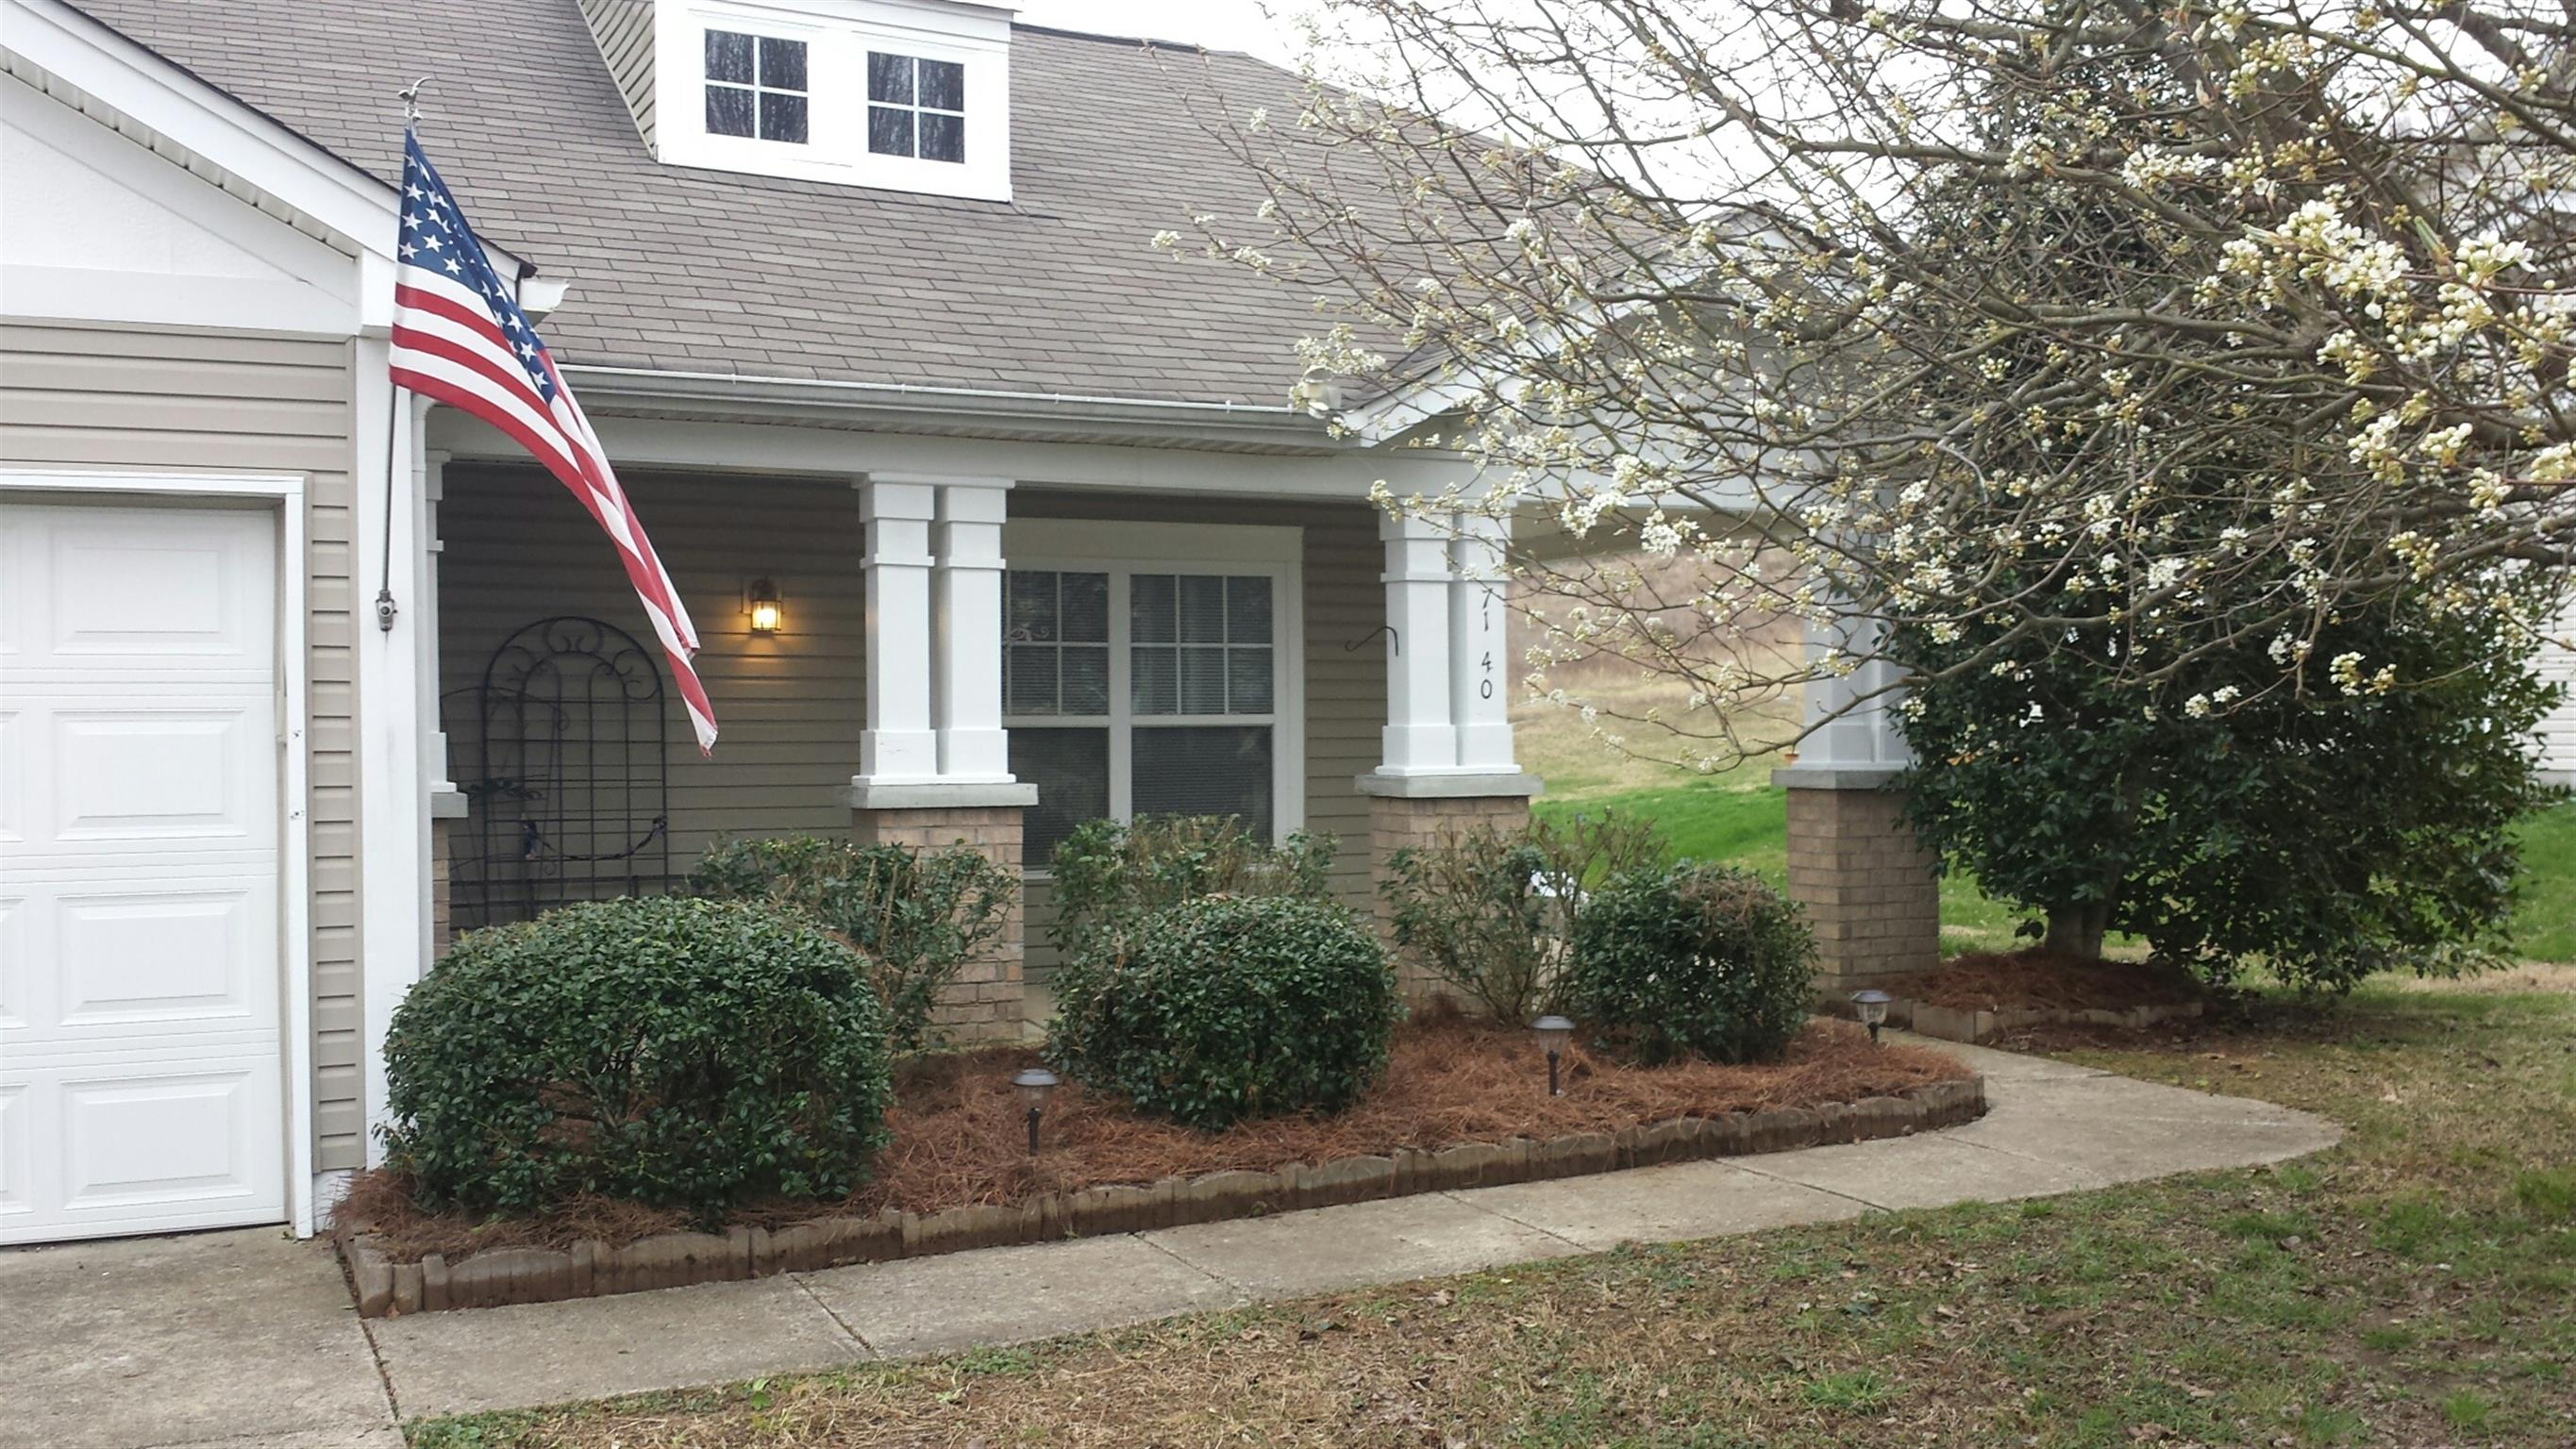 7140 Commonwealth Cir, Bellevue in Davidson County County, TN 37221 Home for Sale